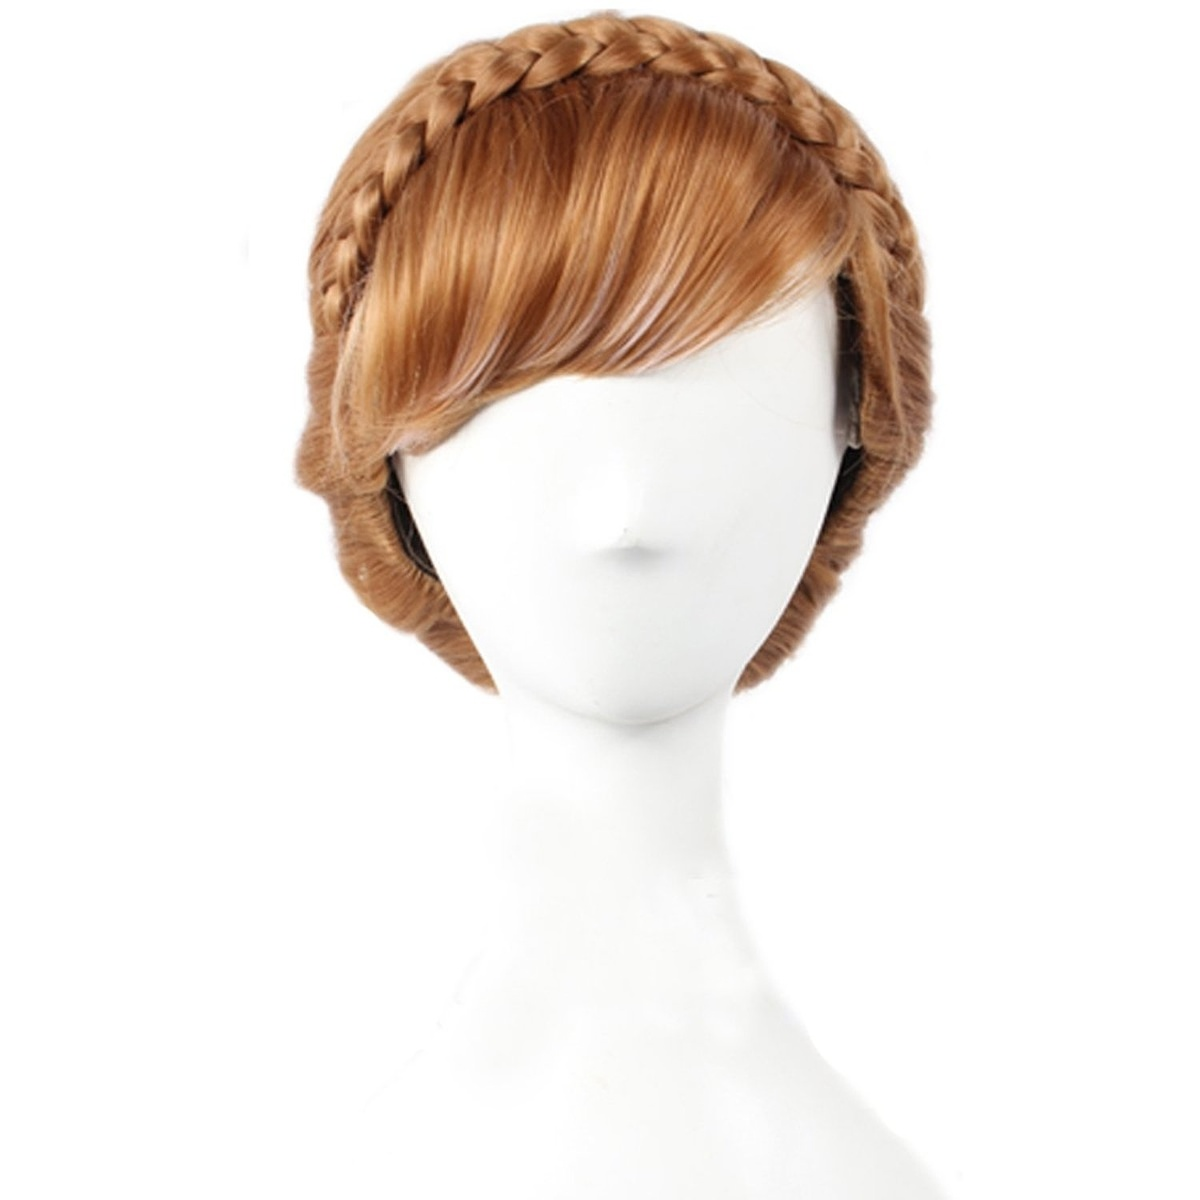 Women's Braids Updo Style Costume Cosplay Party Wigs Brown Short